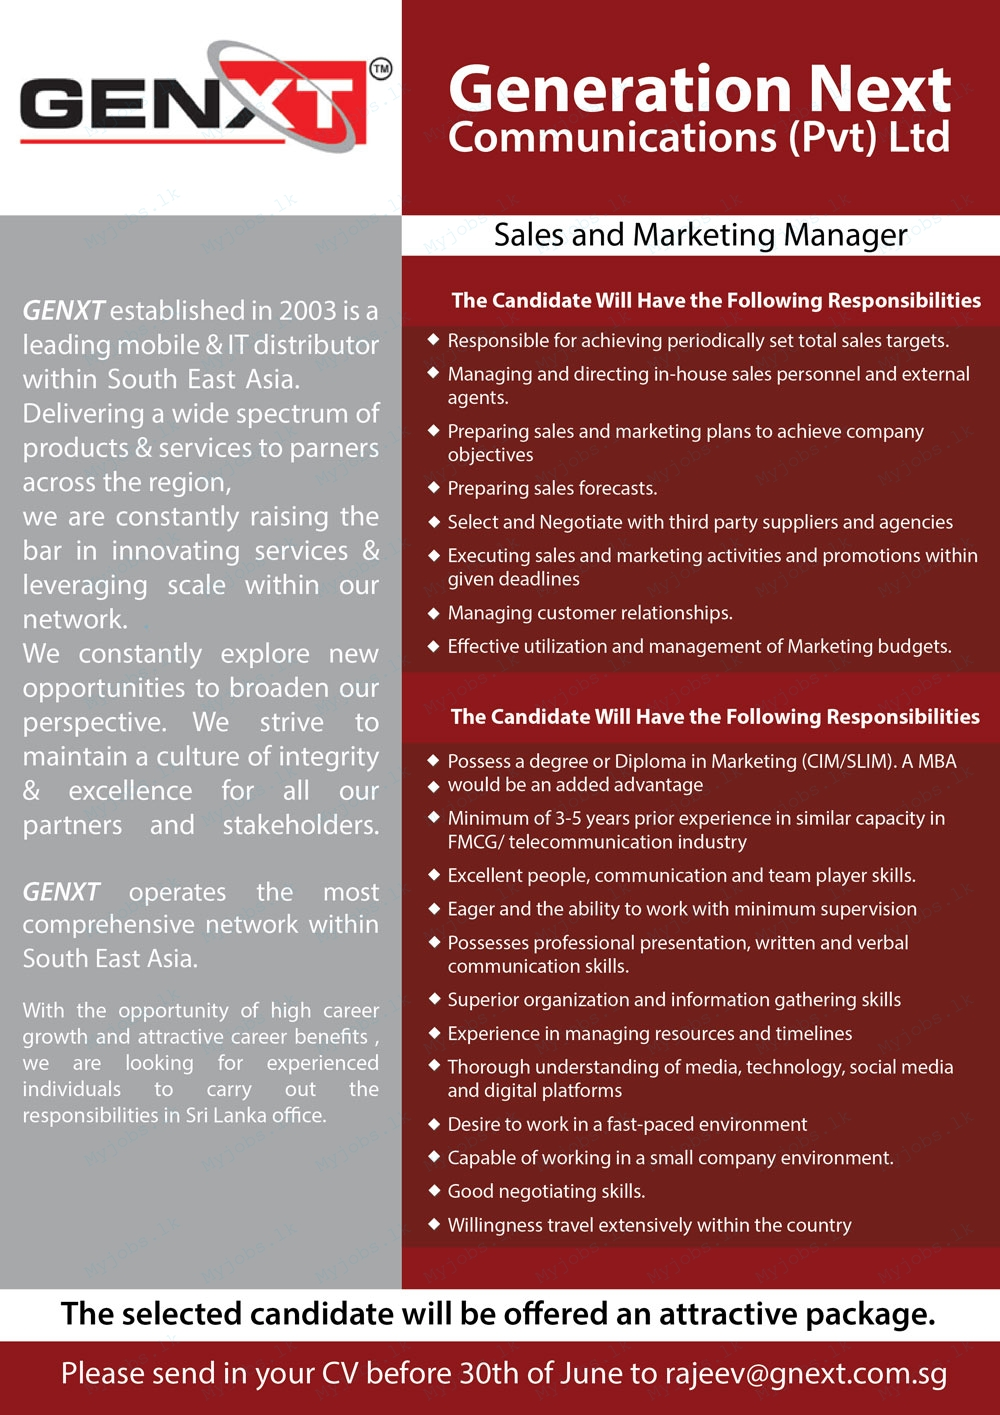 sales and marketing manager jobs in sri lanka